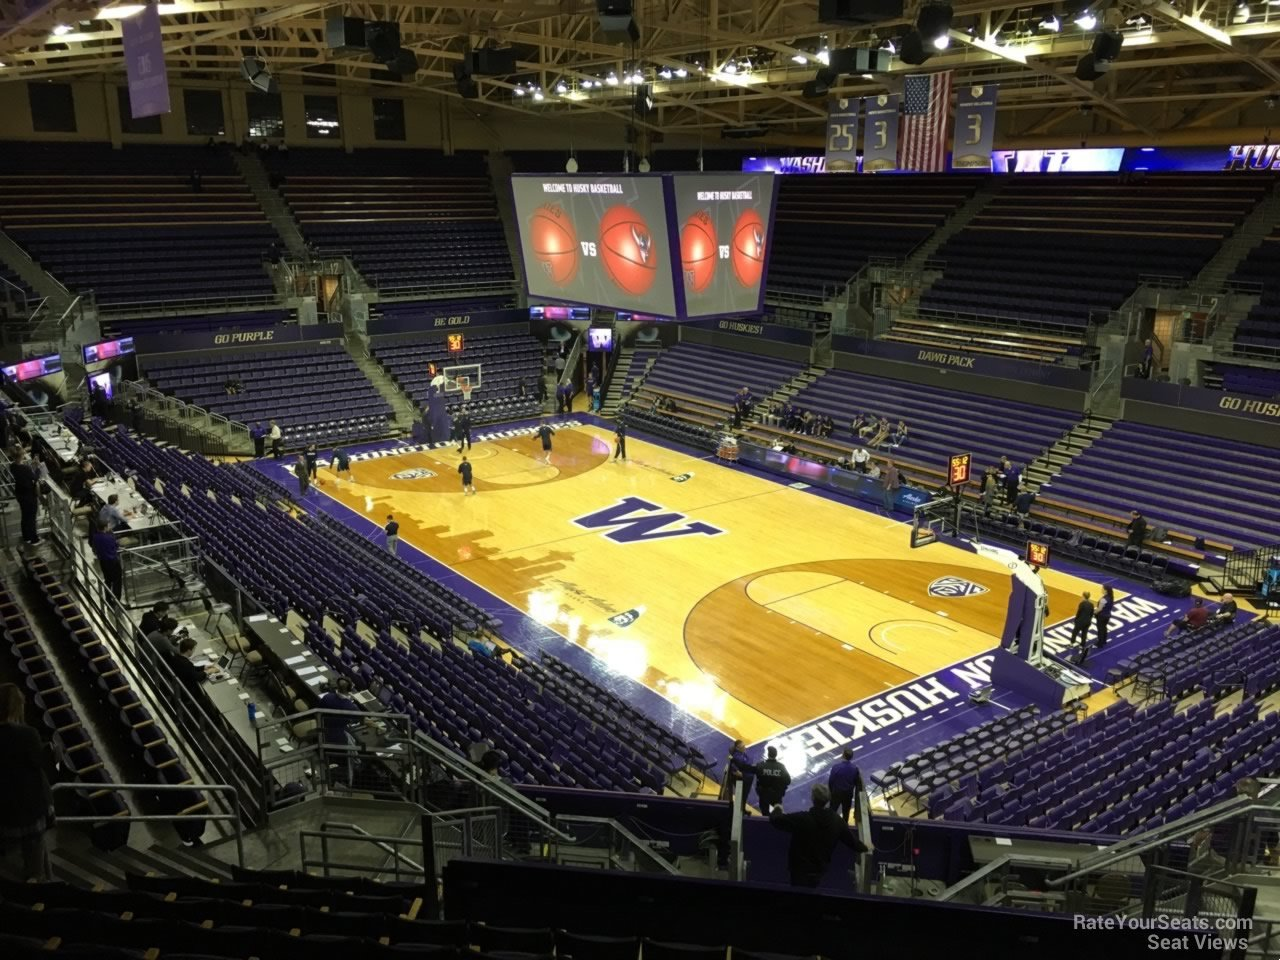 Seat View for Alaska Airlines Arena Section 6, Row 24